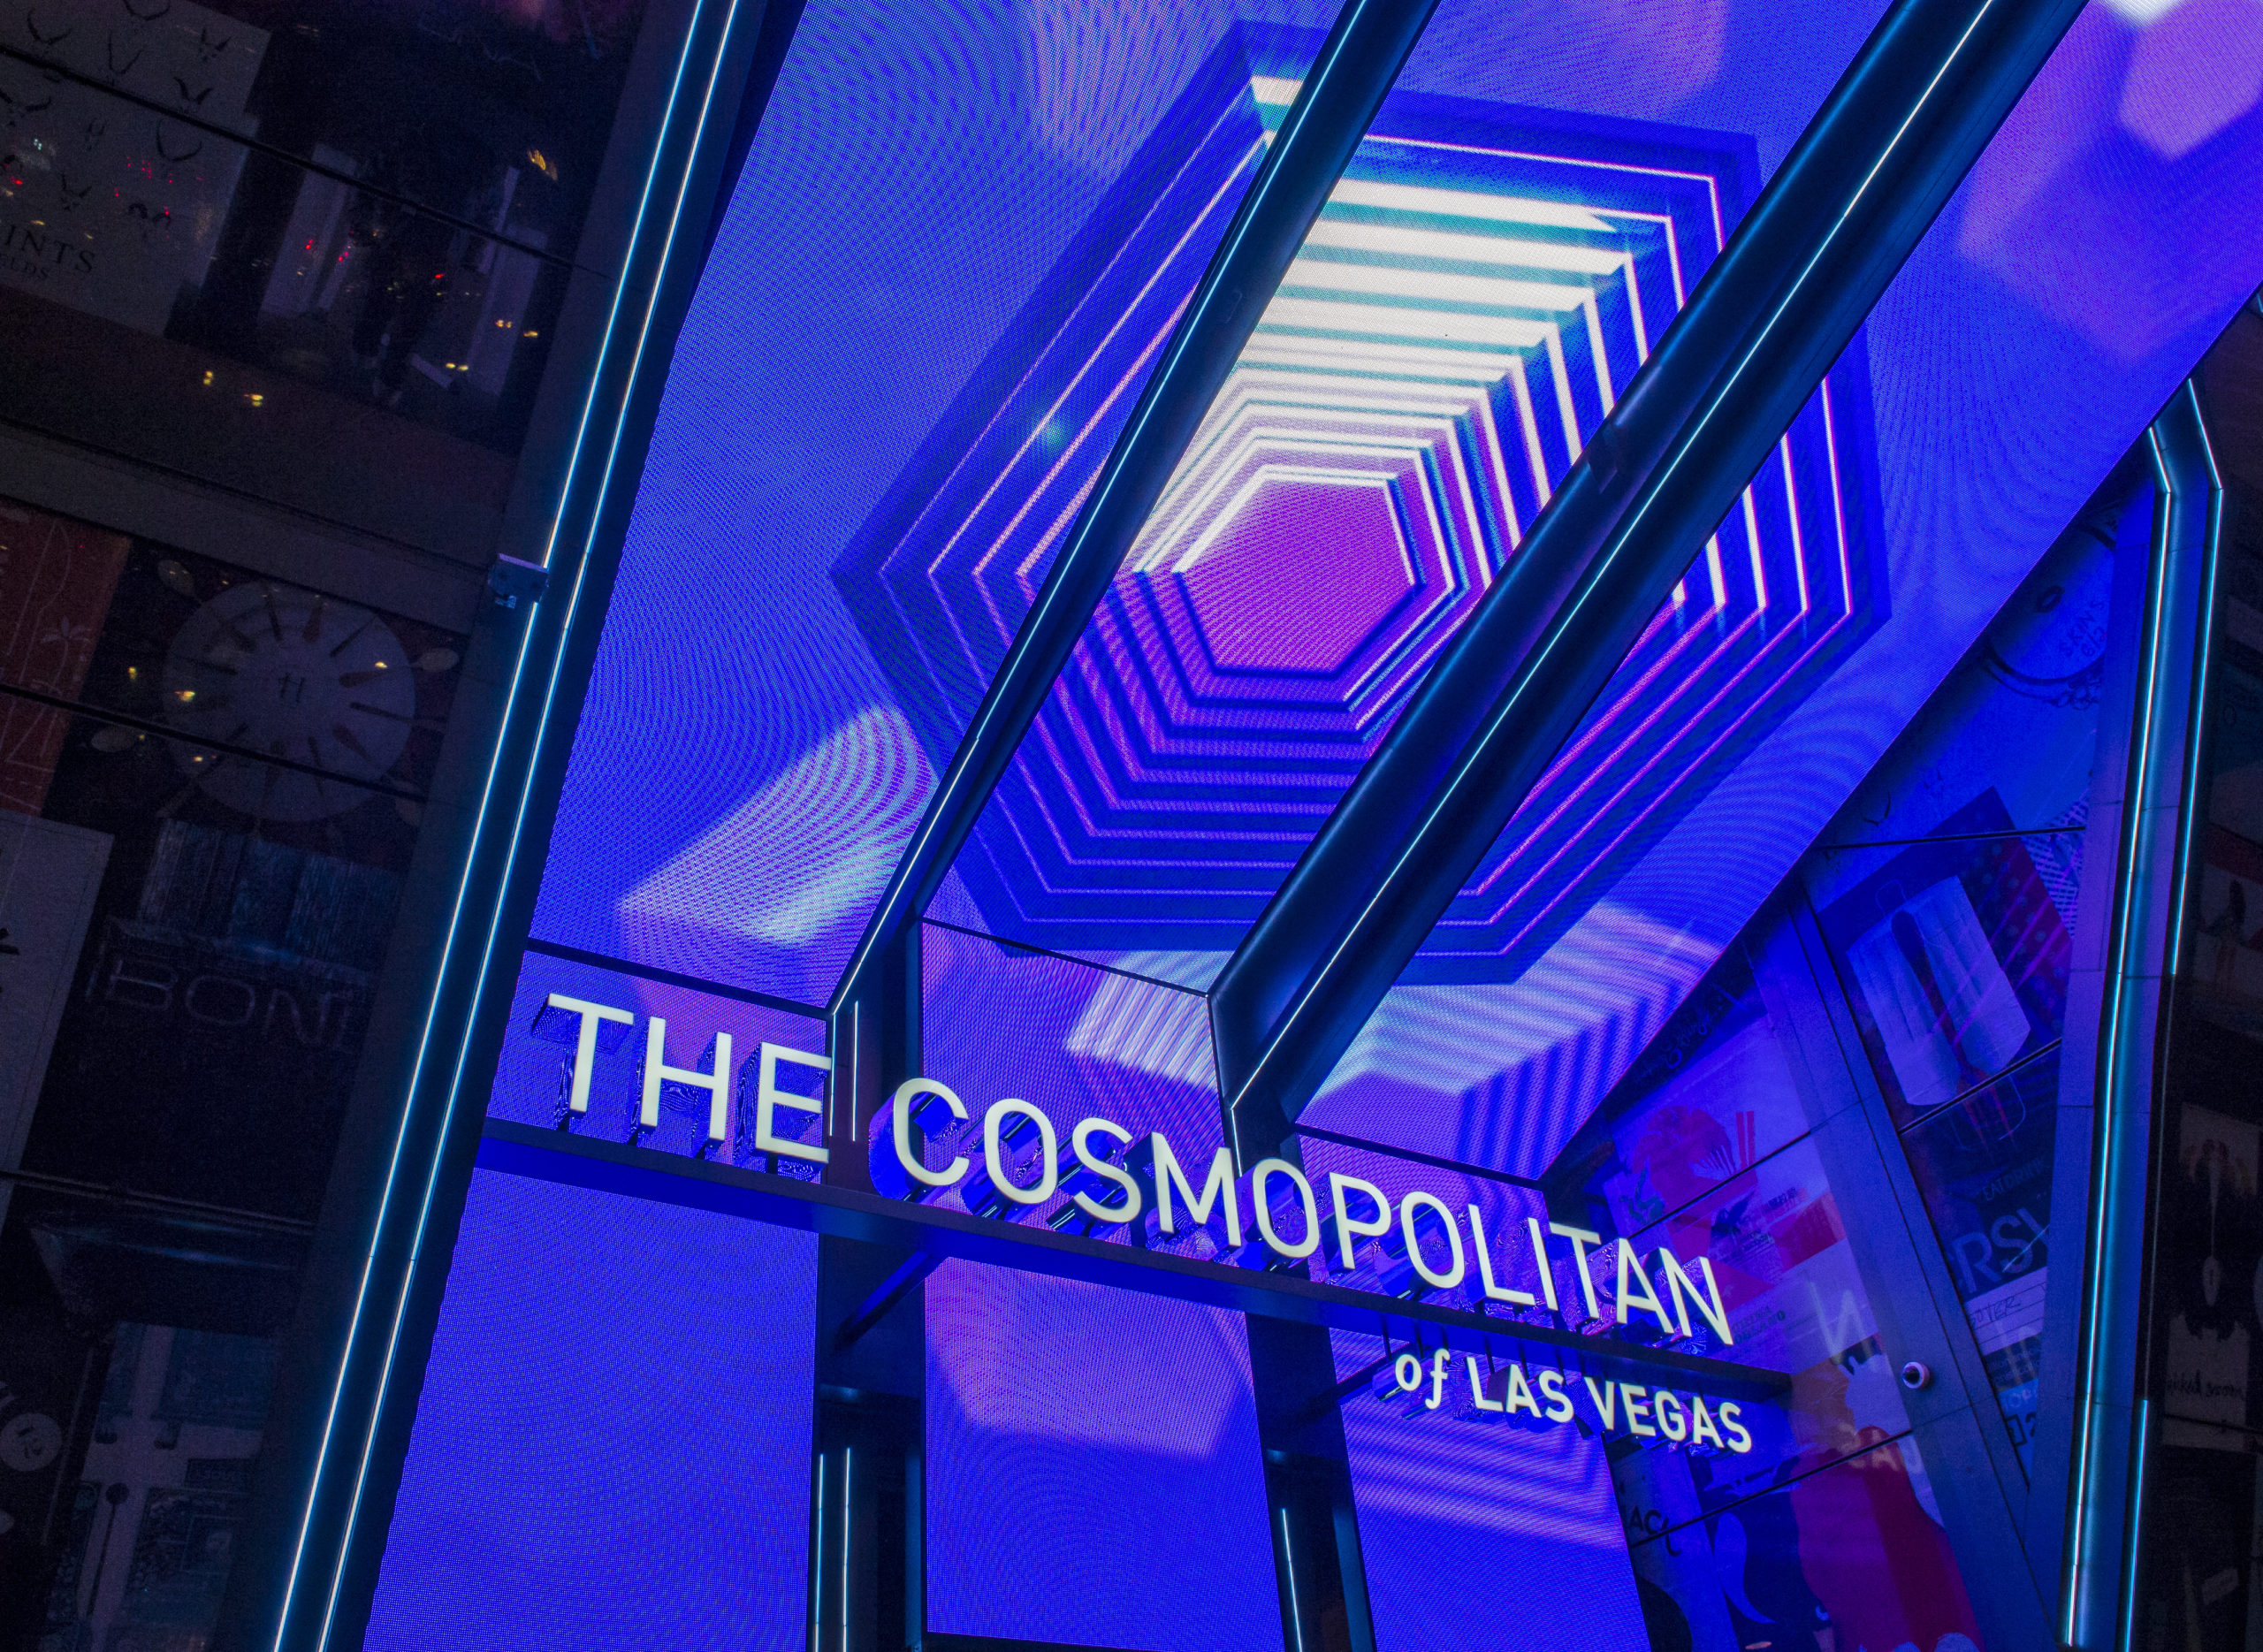 Sign for the Cosmopolitan